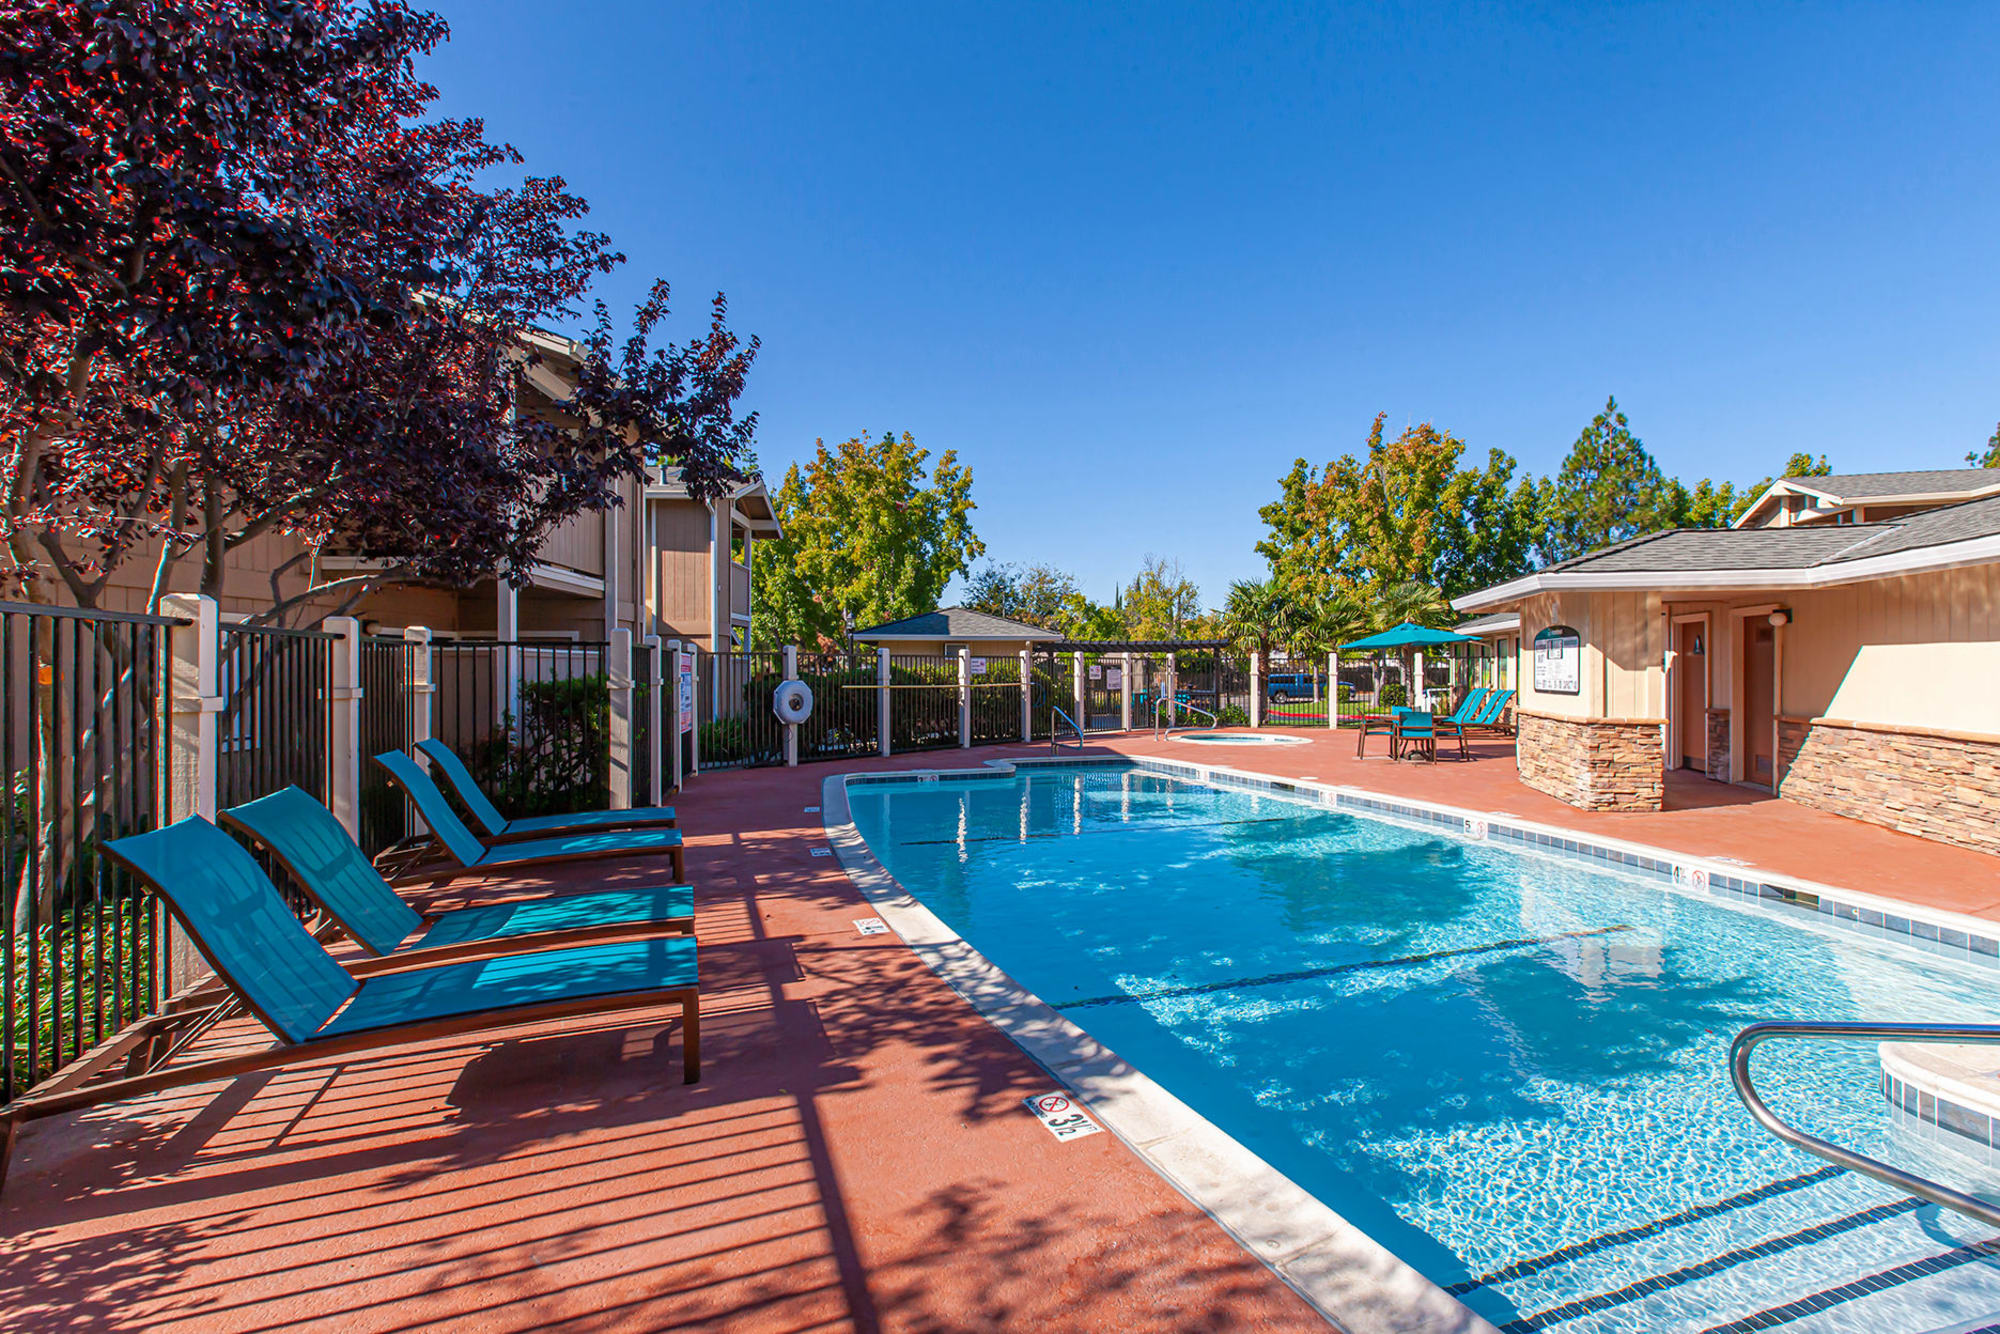 Swimming Pool with lounge Chairs at Sommerset Apartments in Vacaville, CA